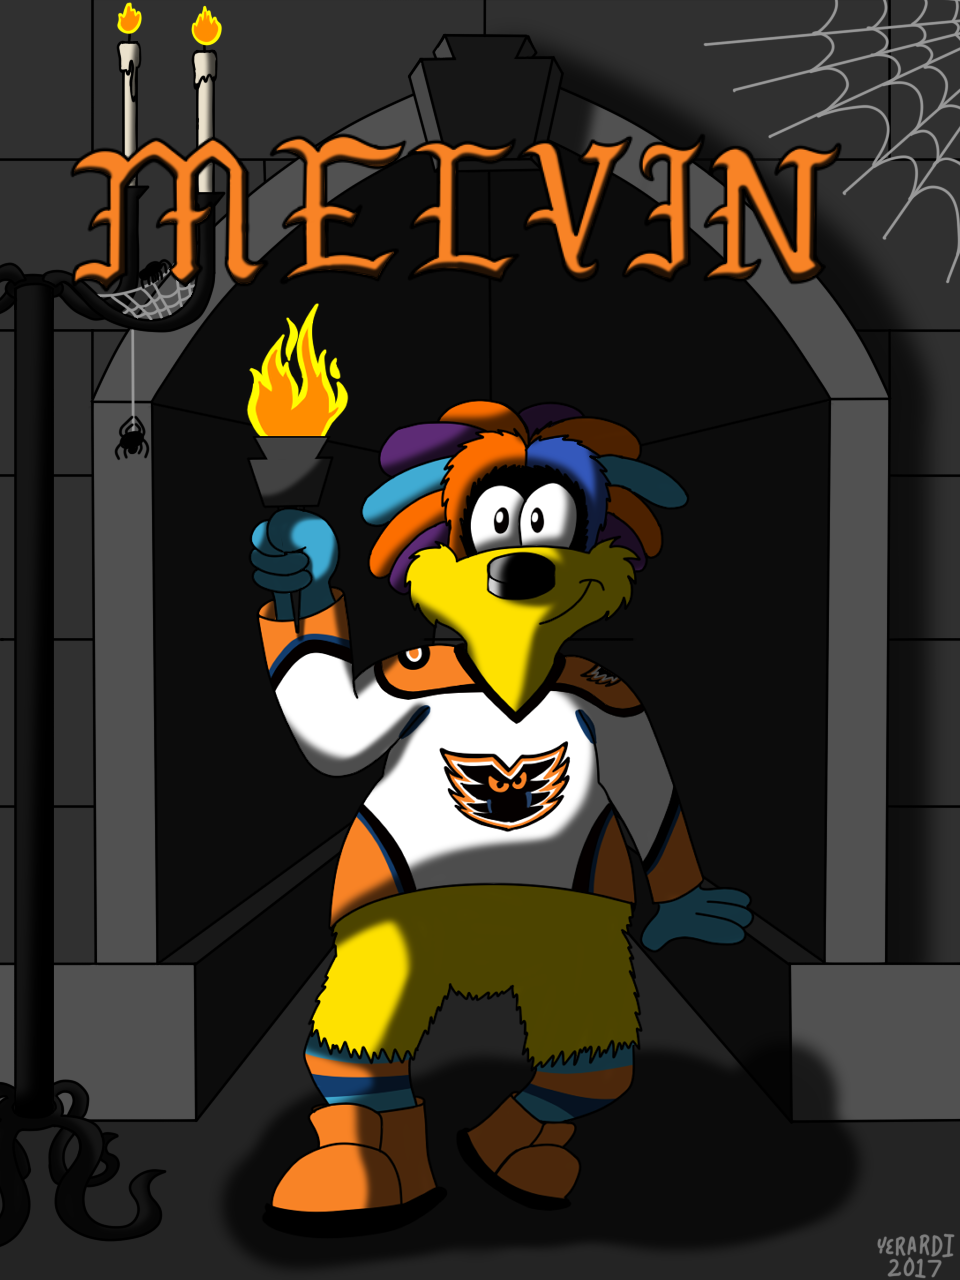 AHL MAX Series Number 07 of 30: MeLVin - Lehigh Valley Phantoms